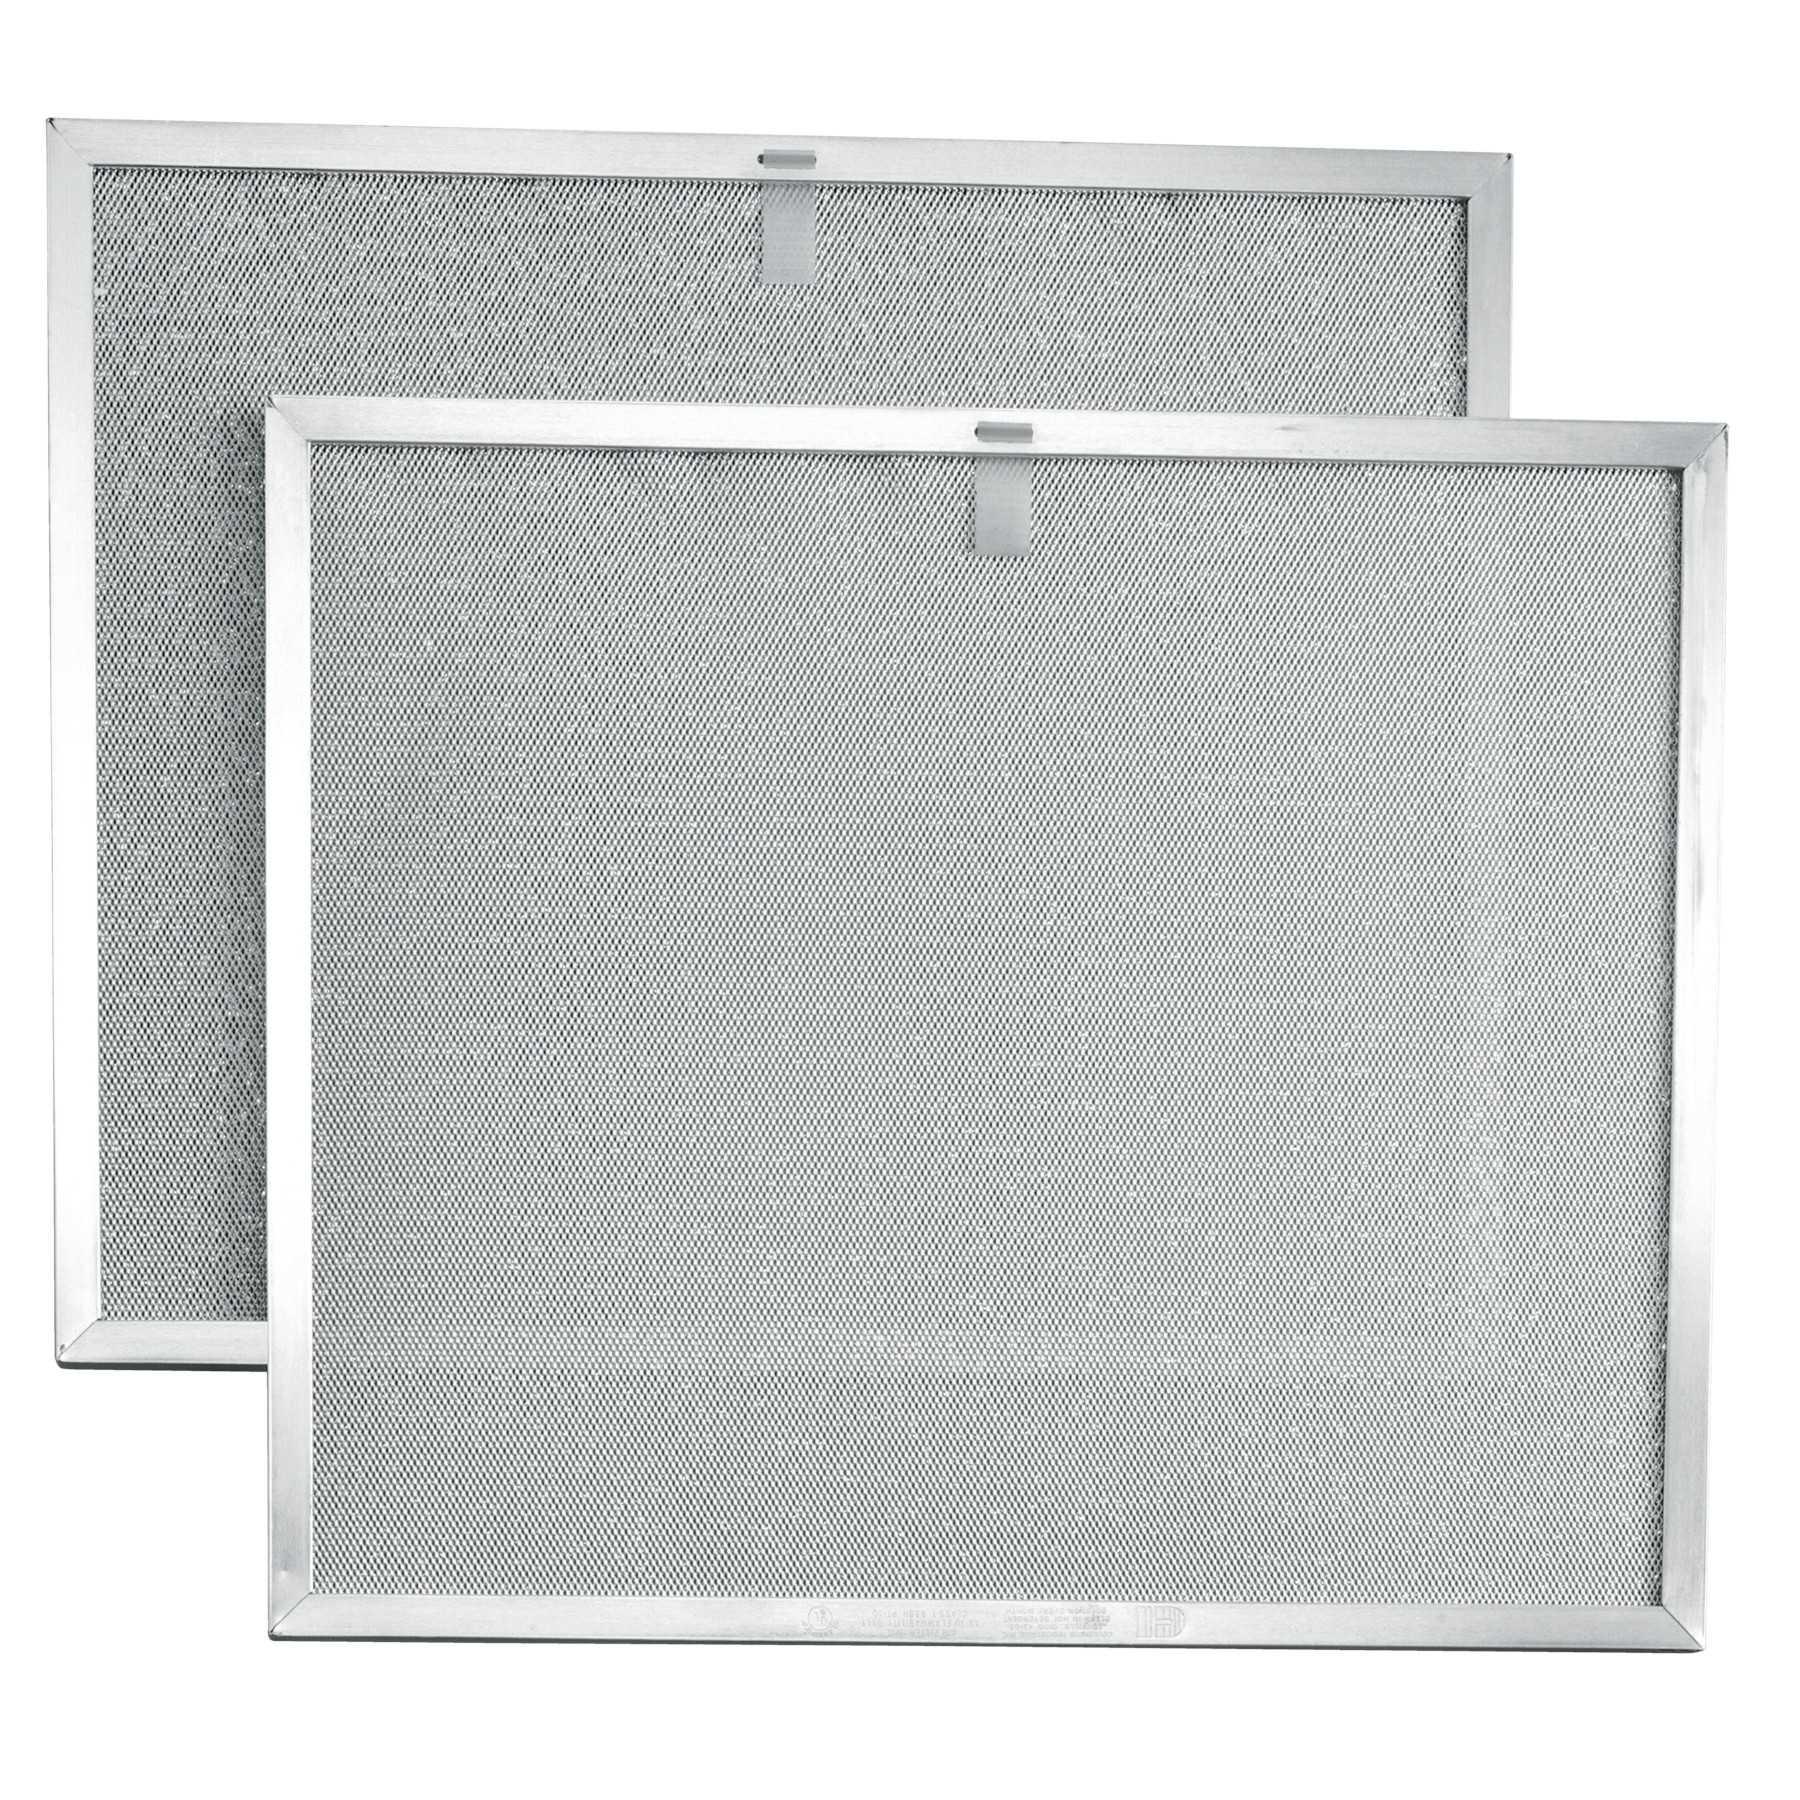 Aluminum Filter for 30-Inch wide QS2 Series Range Hood